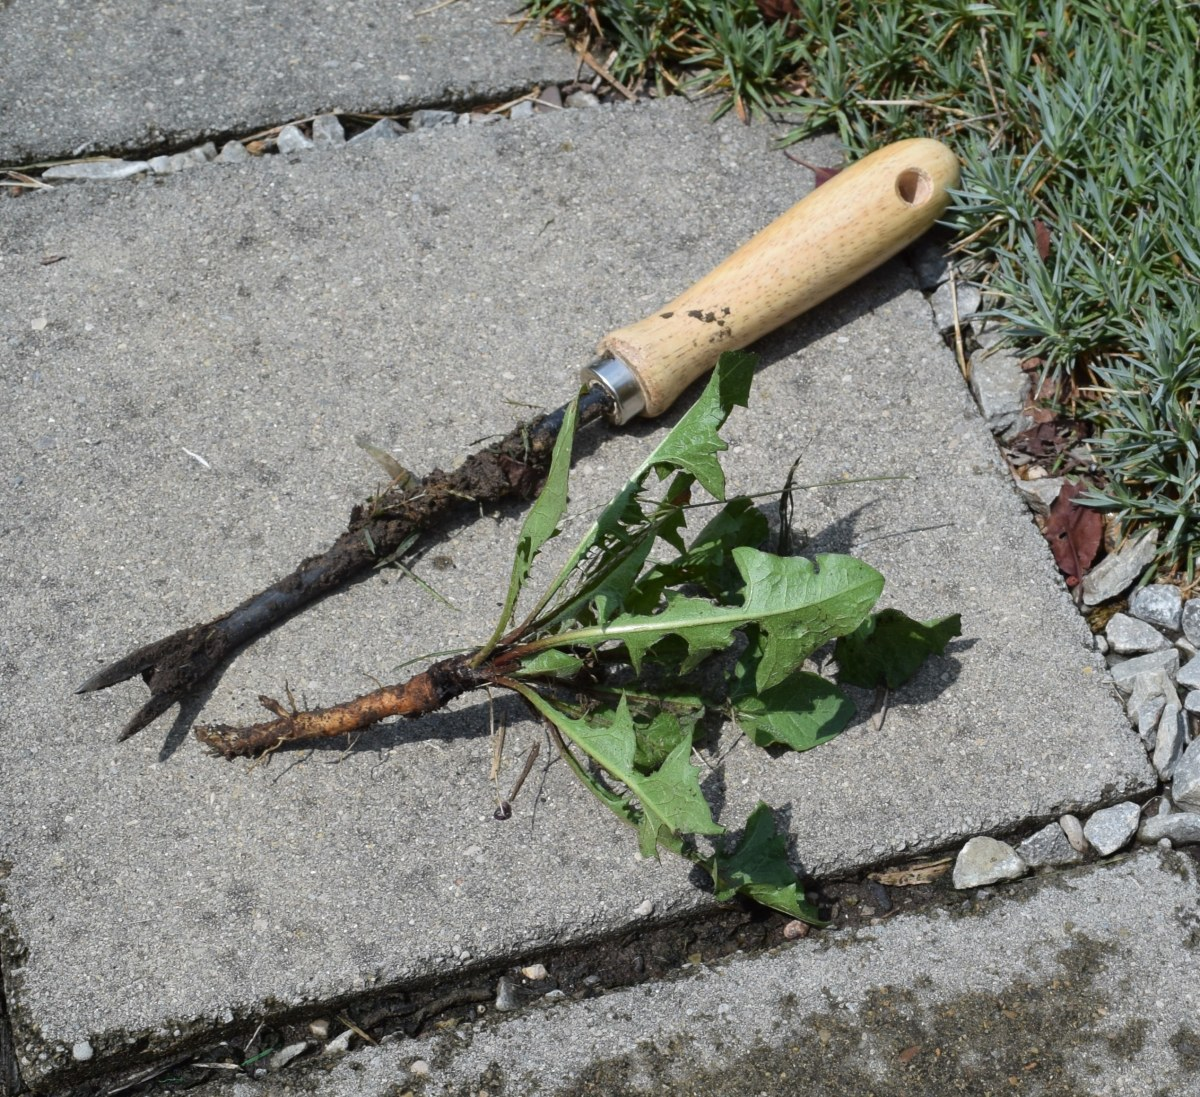 Dandelion weeder and the hapless dandelion. All of the long root (taproot) needs to come out or it will grow back.